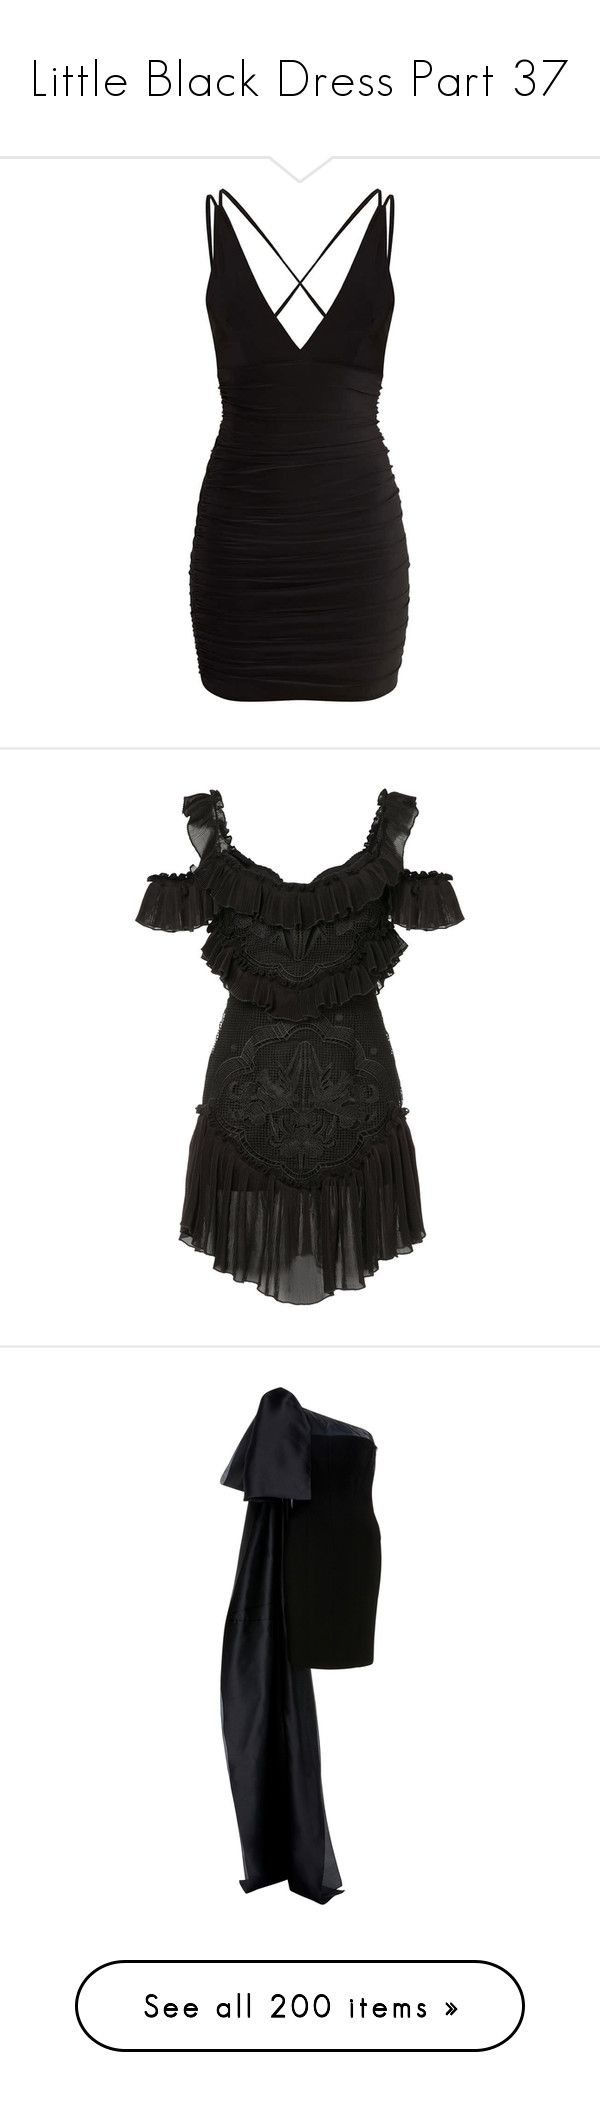 """Little Black Dress Part 37"" by leanne-mcclean ❤ liked on Polyvore featuring dresses, short dresses, pretty little thing, vestidos, bodycon cocktail dresses, shirred dress, ruched dress, ruching dress, black and alice mccall dress"